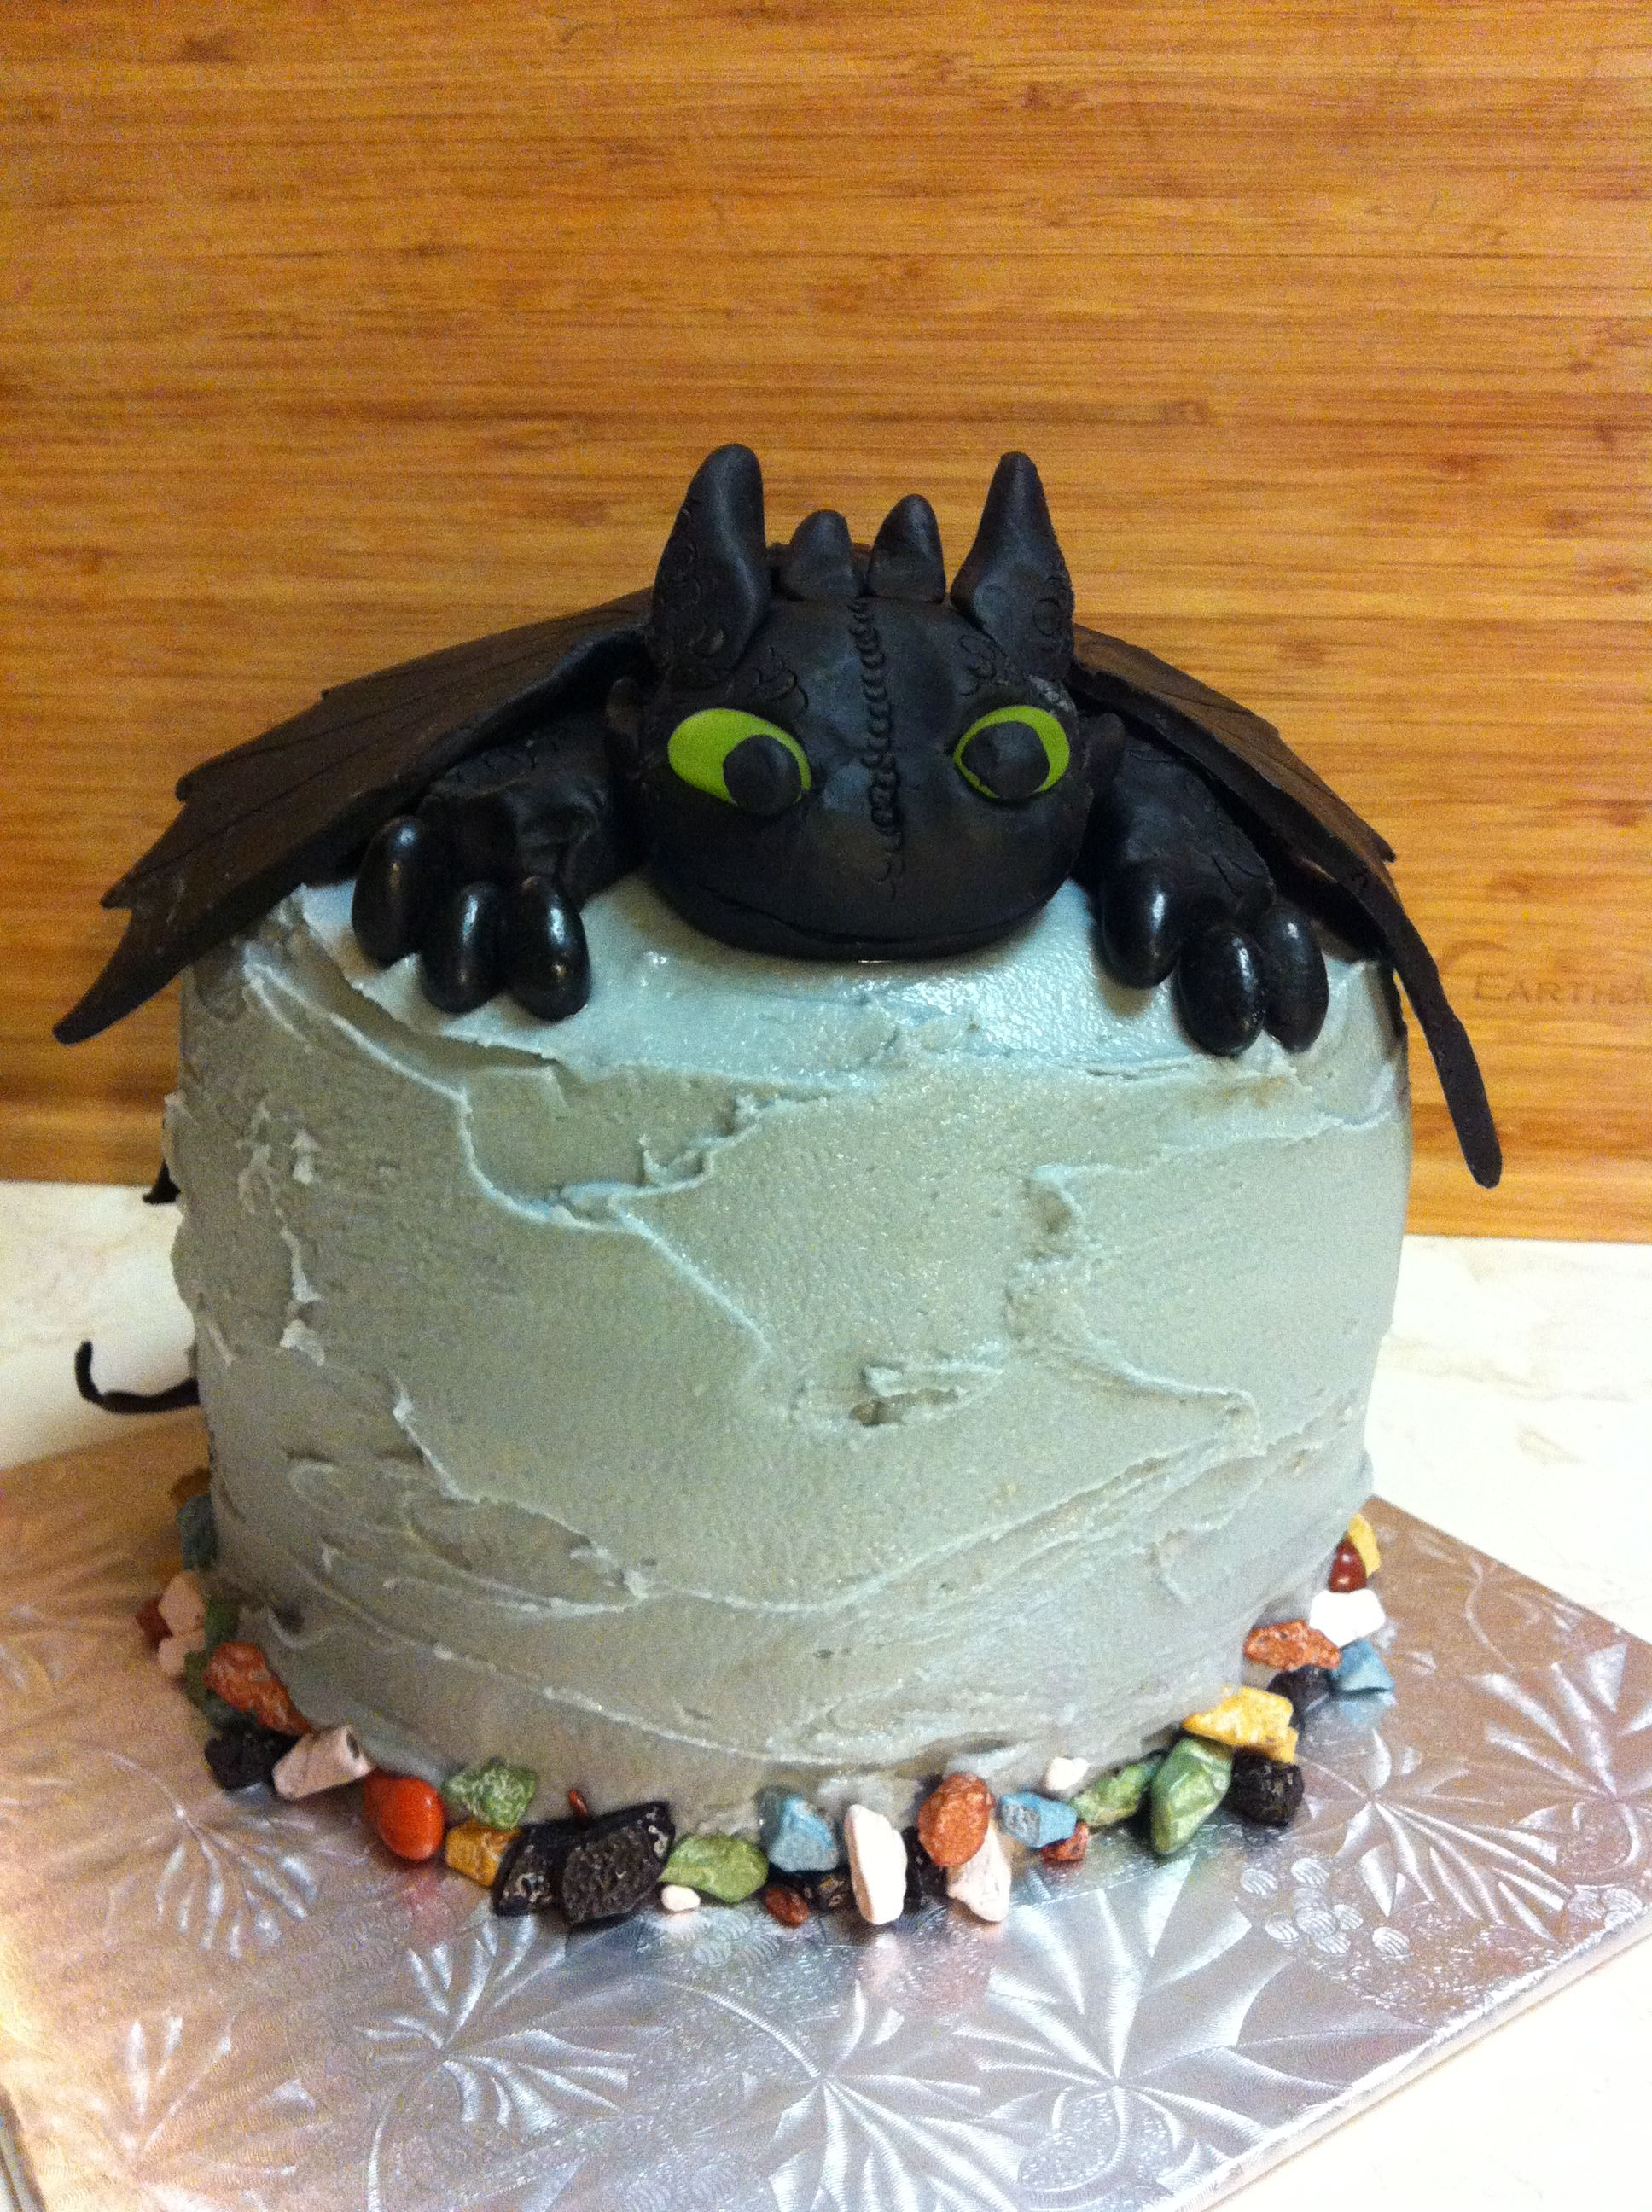 Toothless How to Train your Dragon cake